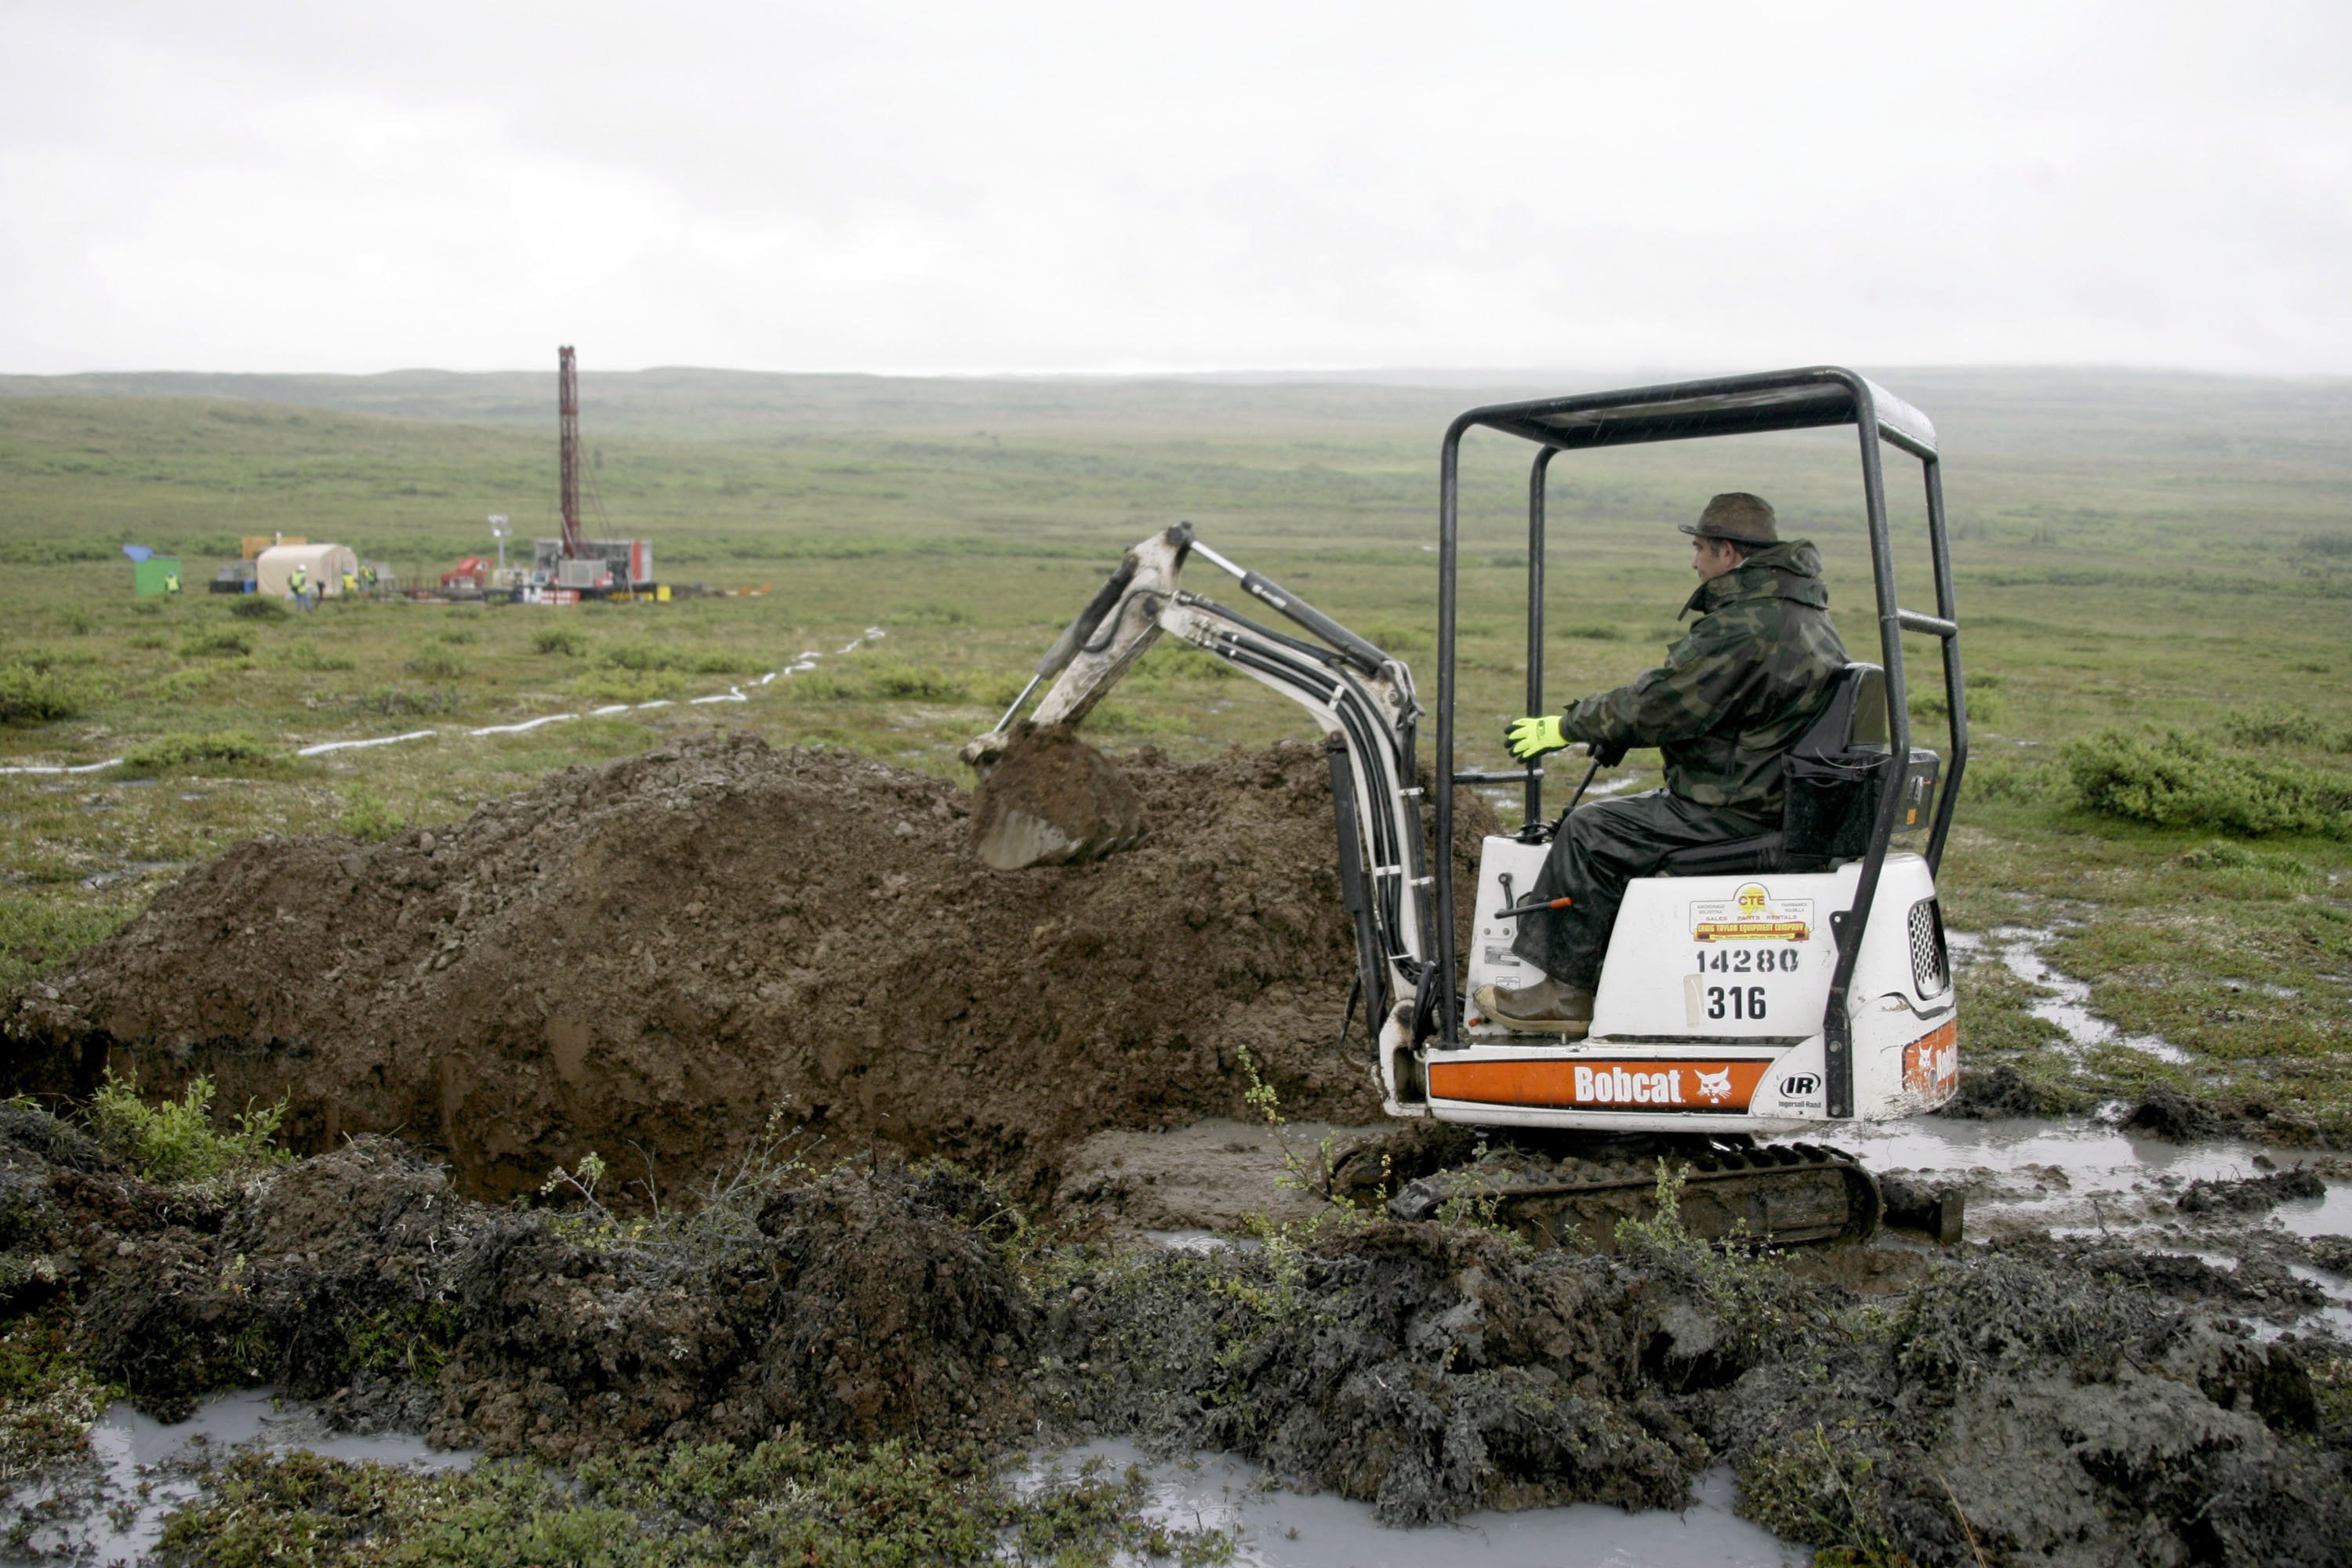 A worker with the Pebble Mine project test drills in the Bristol Bay region of Alaska near the village of Iliamma, Alaska in July 13, 2007. An EPA report at the time indicated a large-scale copper and gold mine in Alaska's Bristol Bay region could have devastating effects on the world's largest sockeye salmon fishery and adversely affect Alaska Natives, whose culture is built around salmon.(Al Grillo/AP)